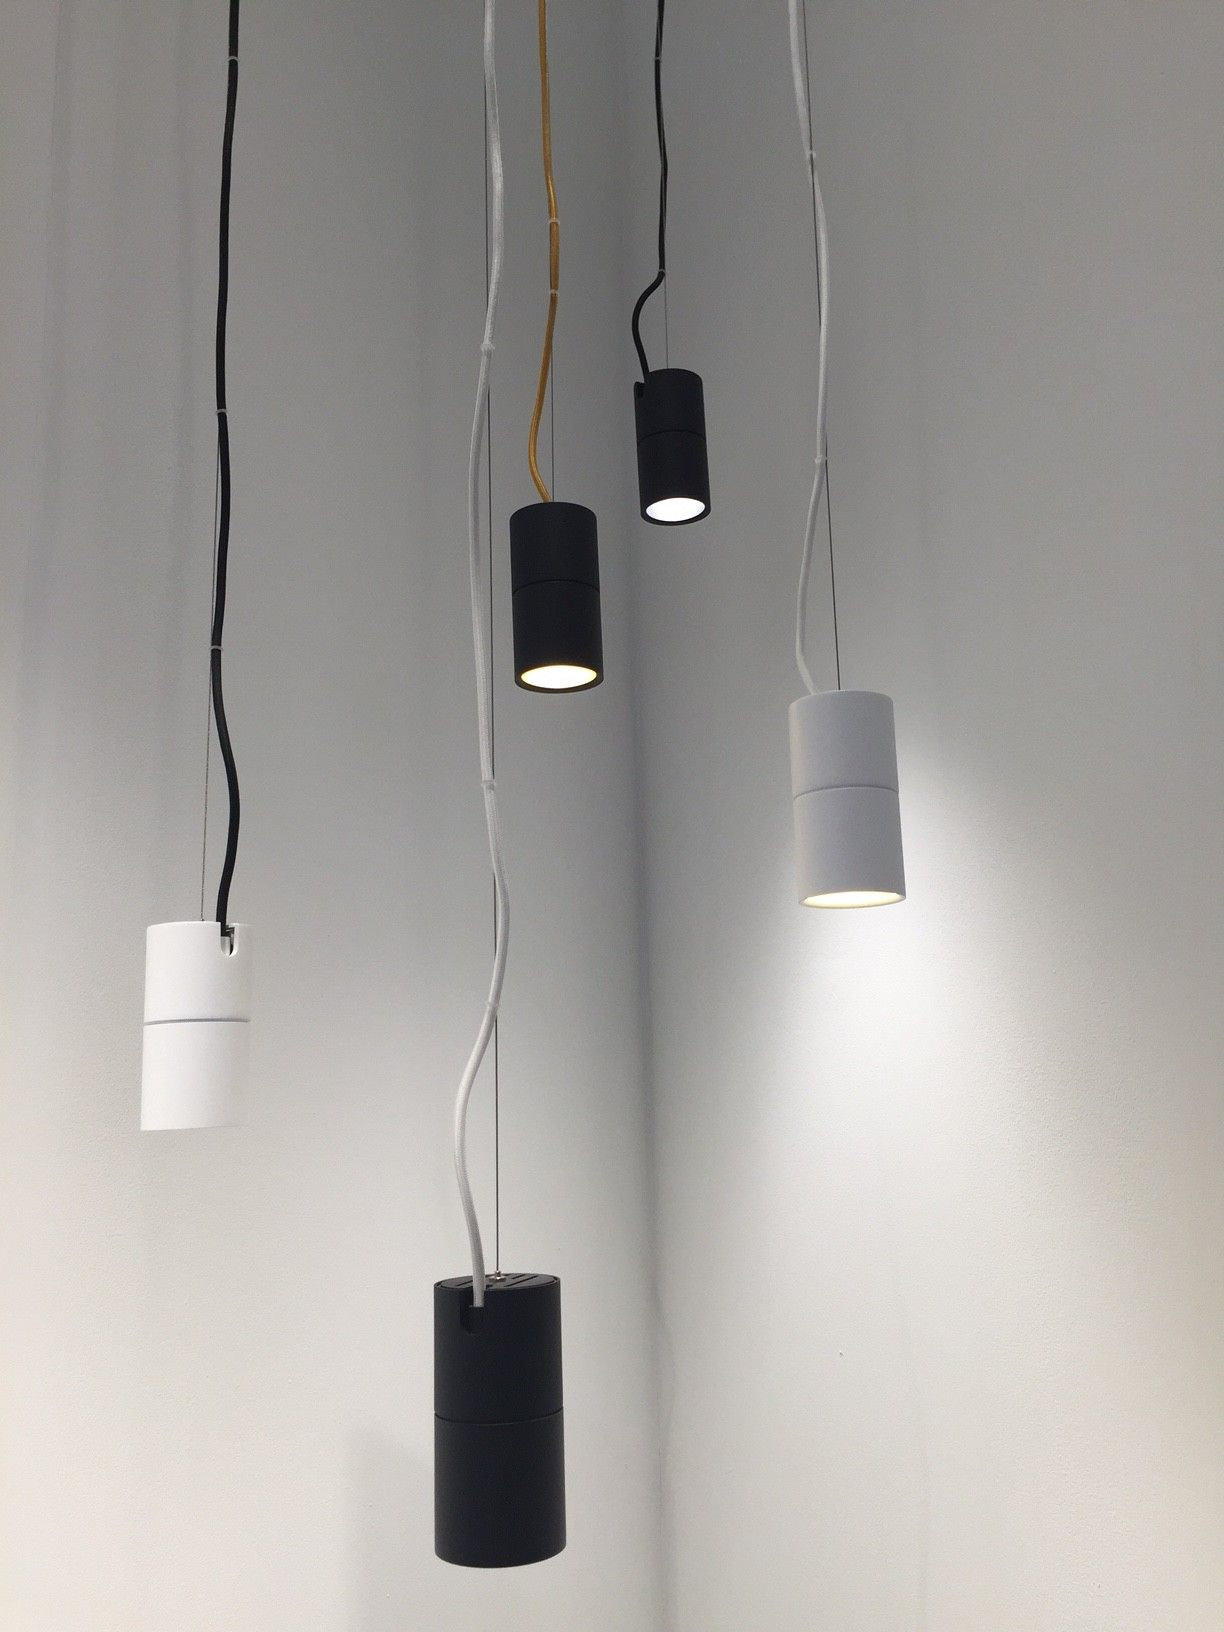 Innenbeleuchtung Design Village Molto Luce 2016 Dash Dc Pendant | Light & Building 2016